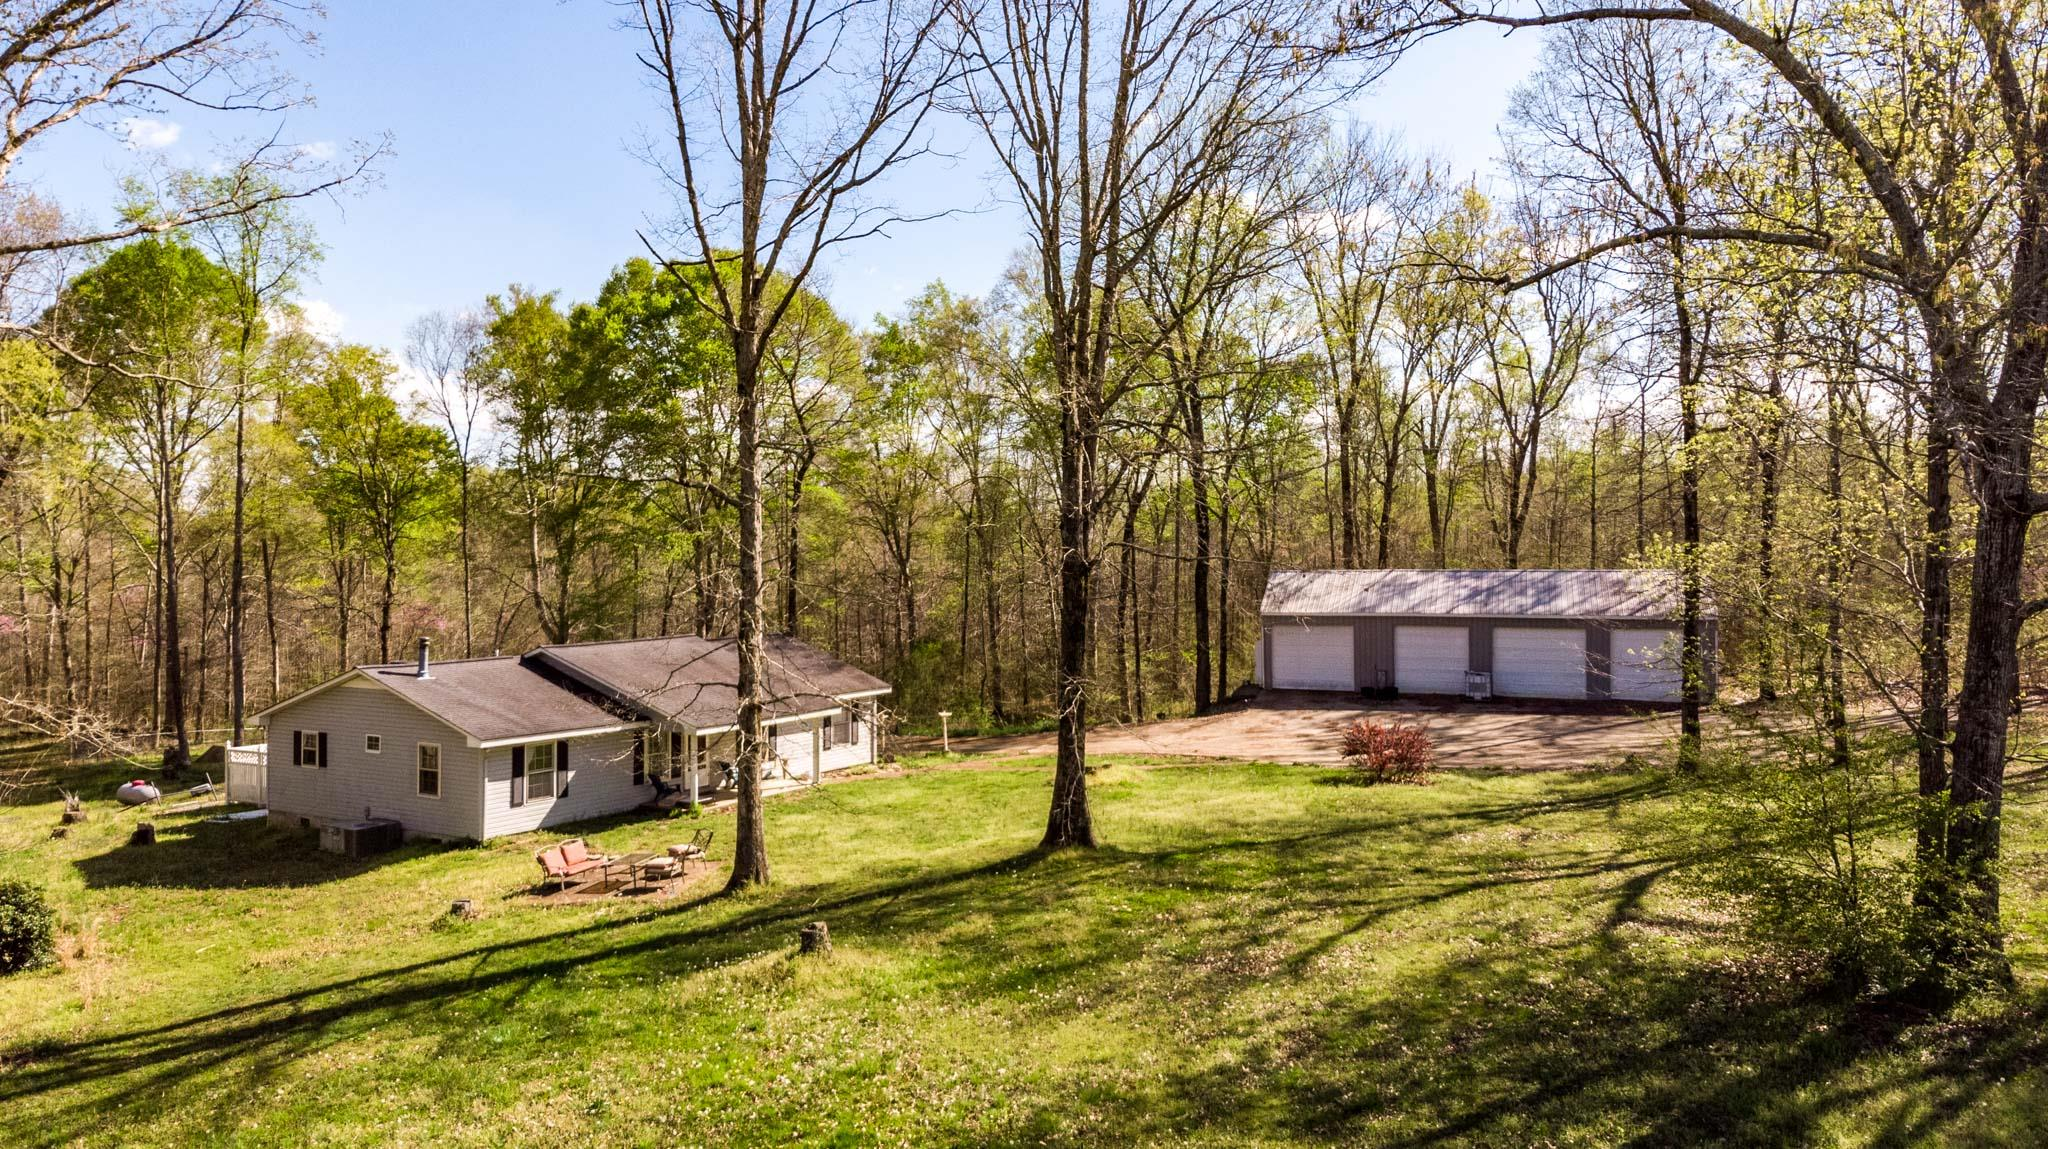 487 Busby Rd, Loretto, TN 38469 - Loretto, TN real estate listing